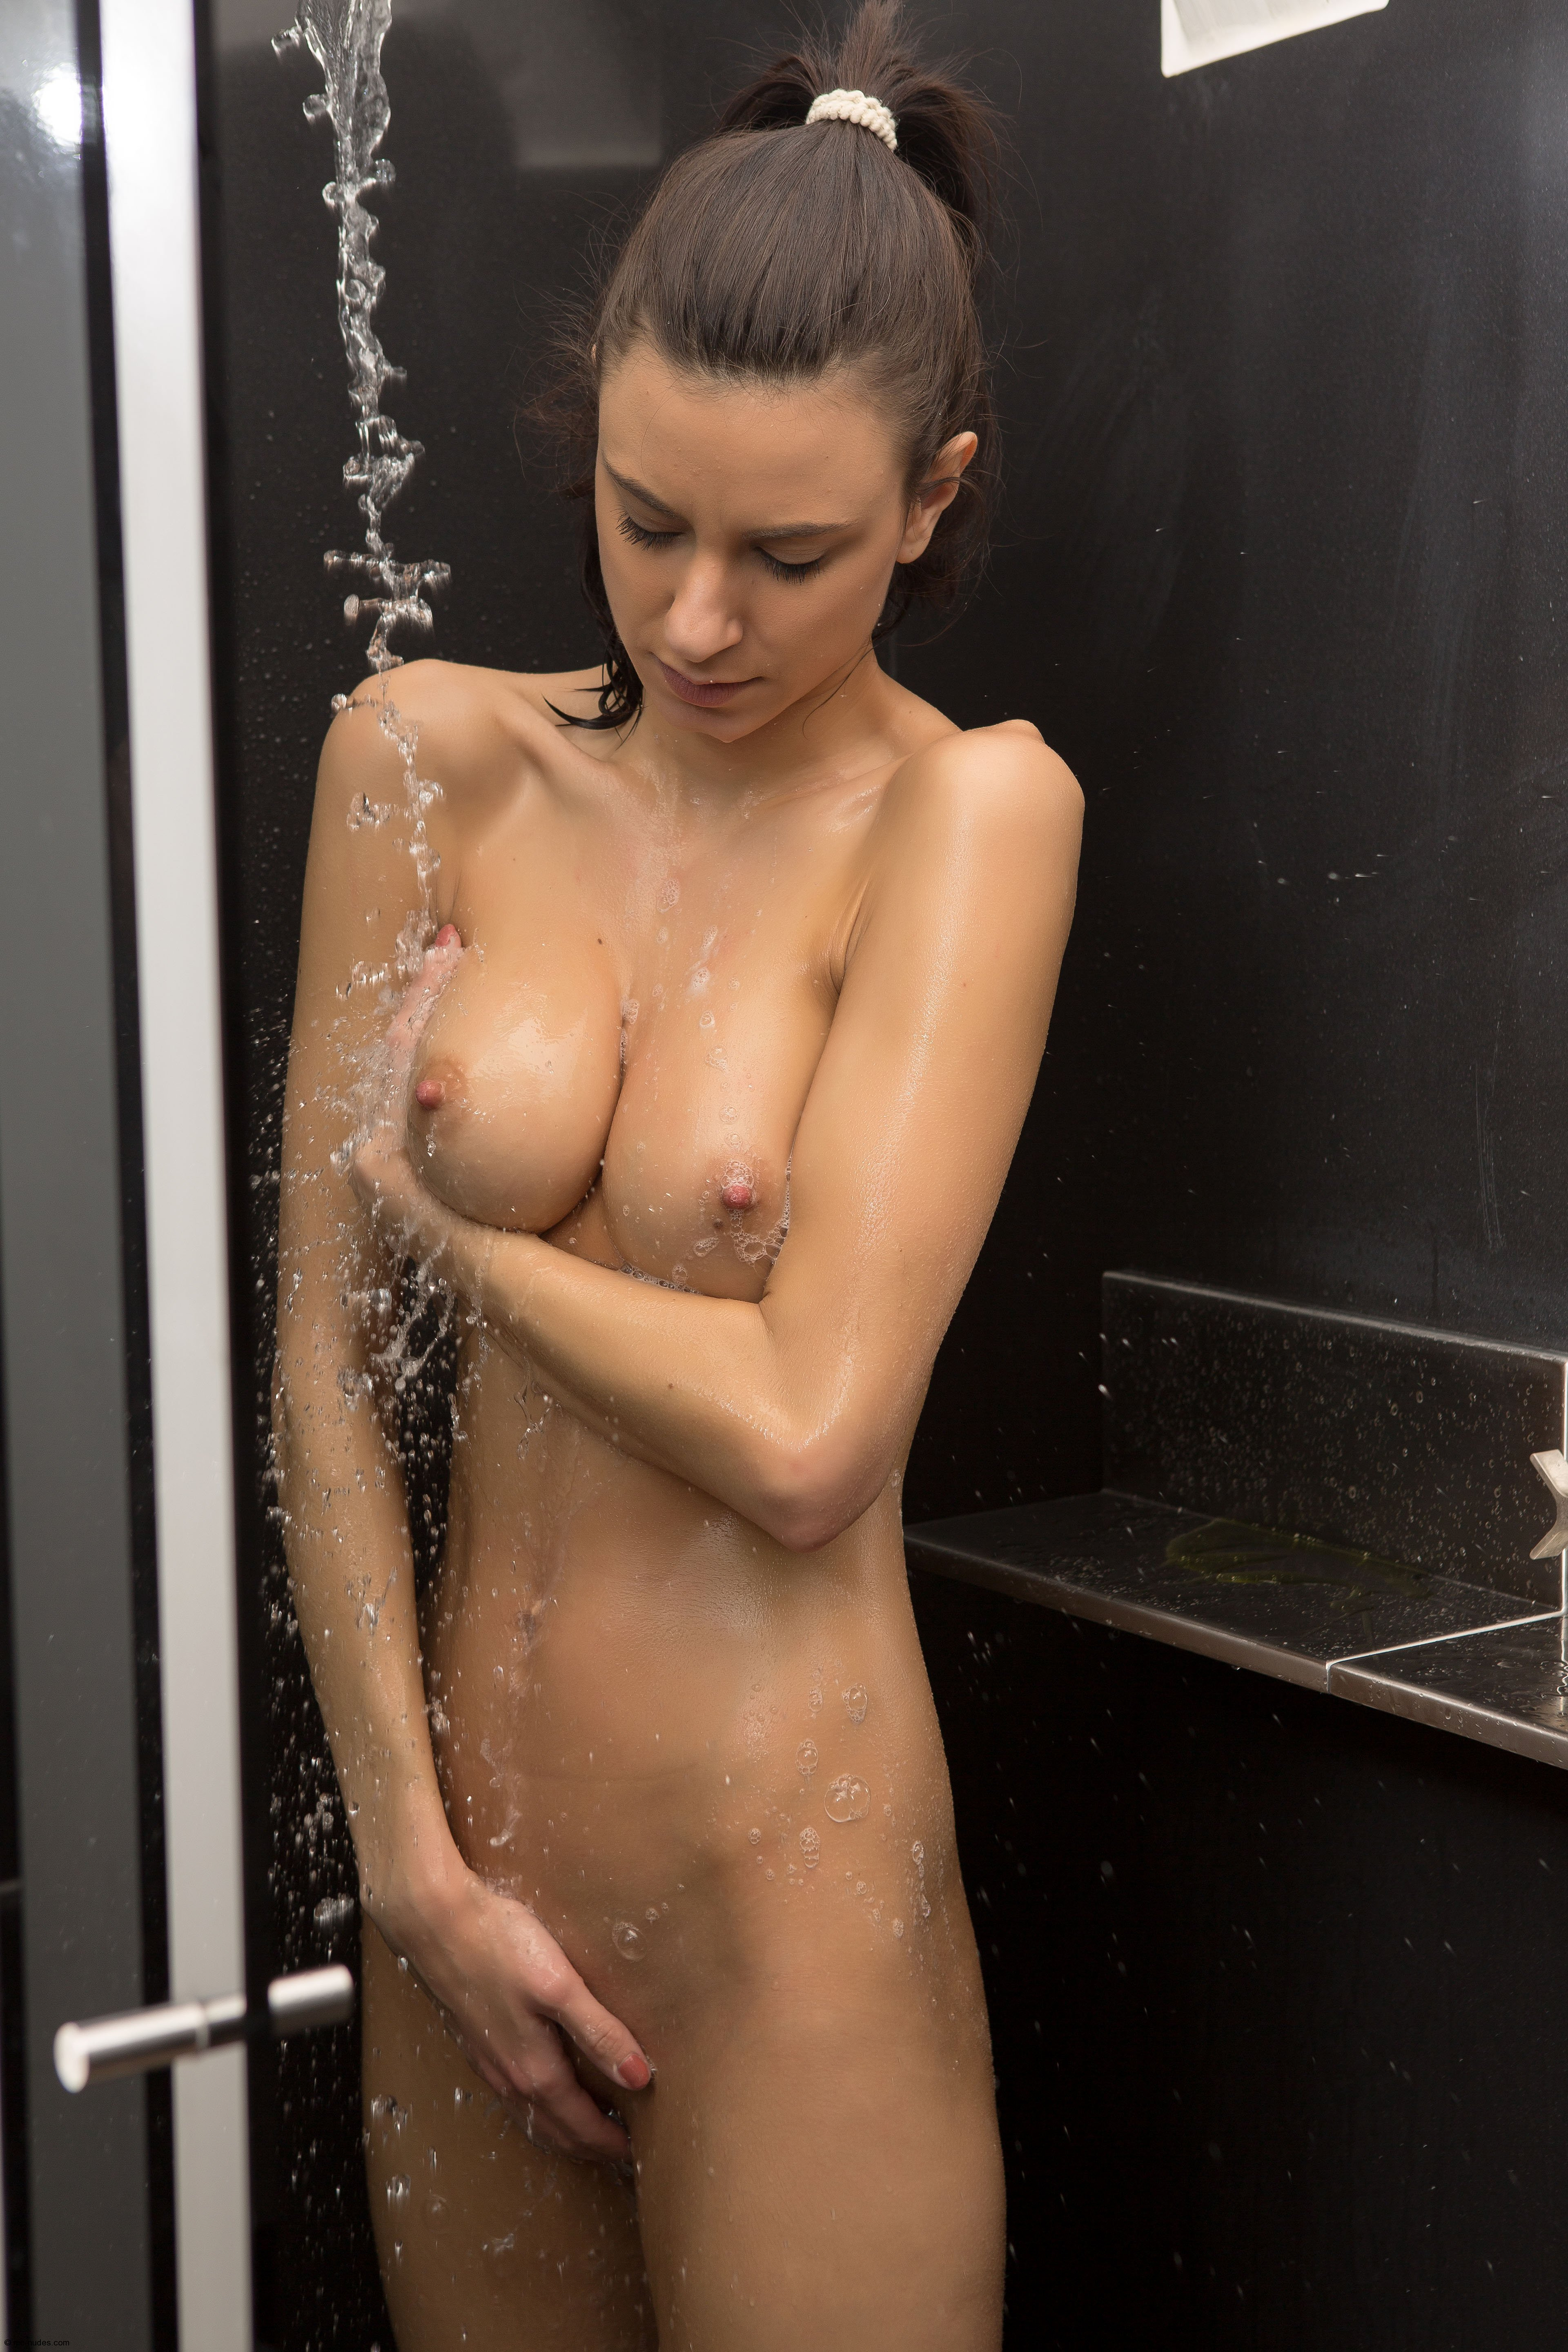 cute-naked-body-in-shower-pics